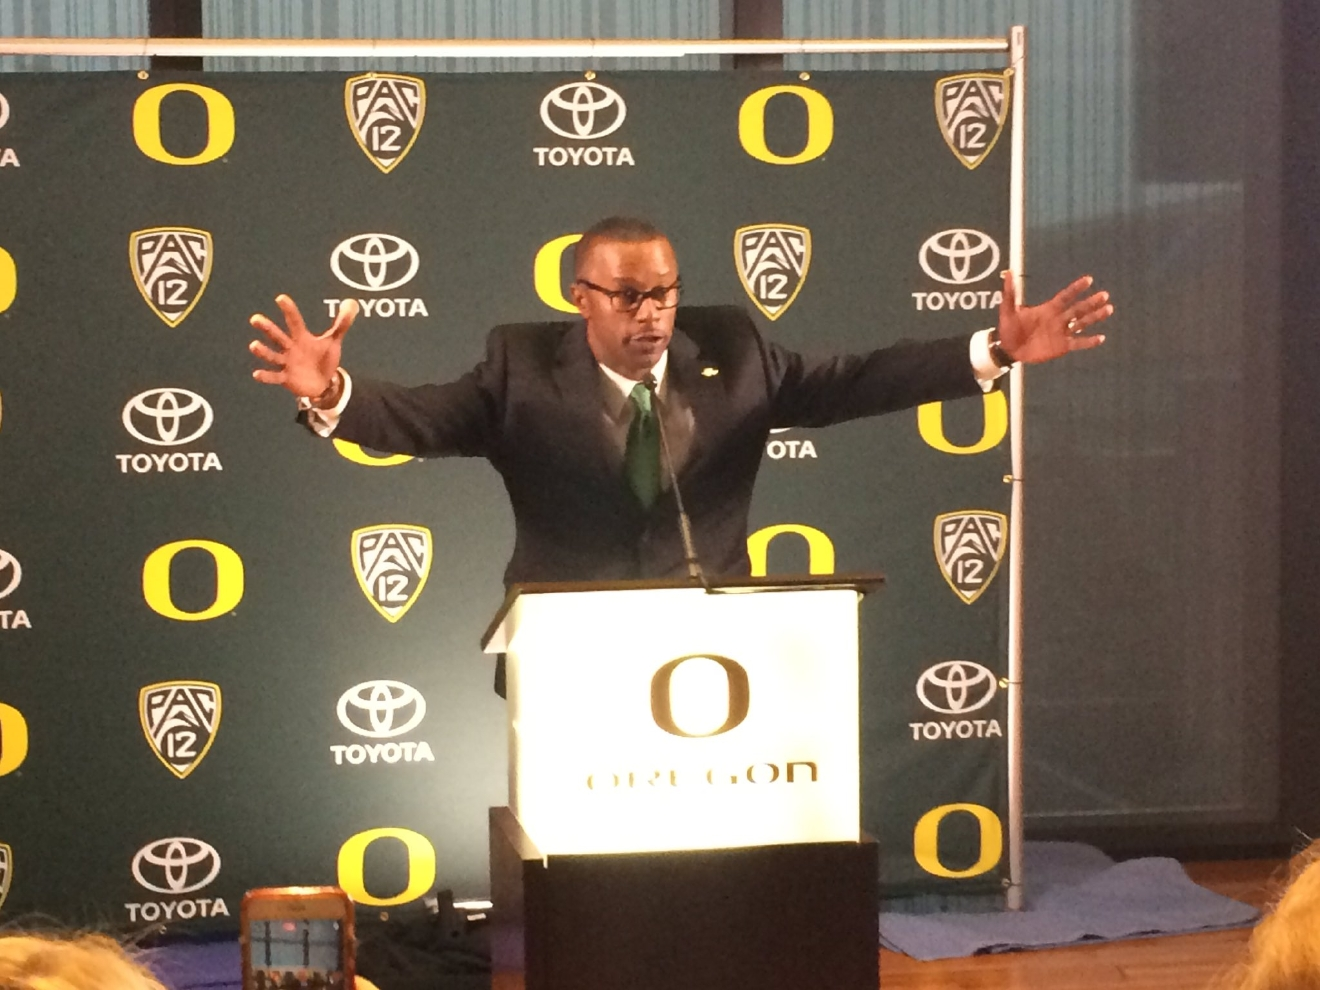 Willie Taggart, the new Oregon head football coach, at a press conference Thursday, December 8, 2016. (Hayden Herrera/SBG)